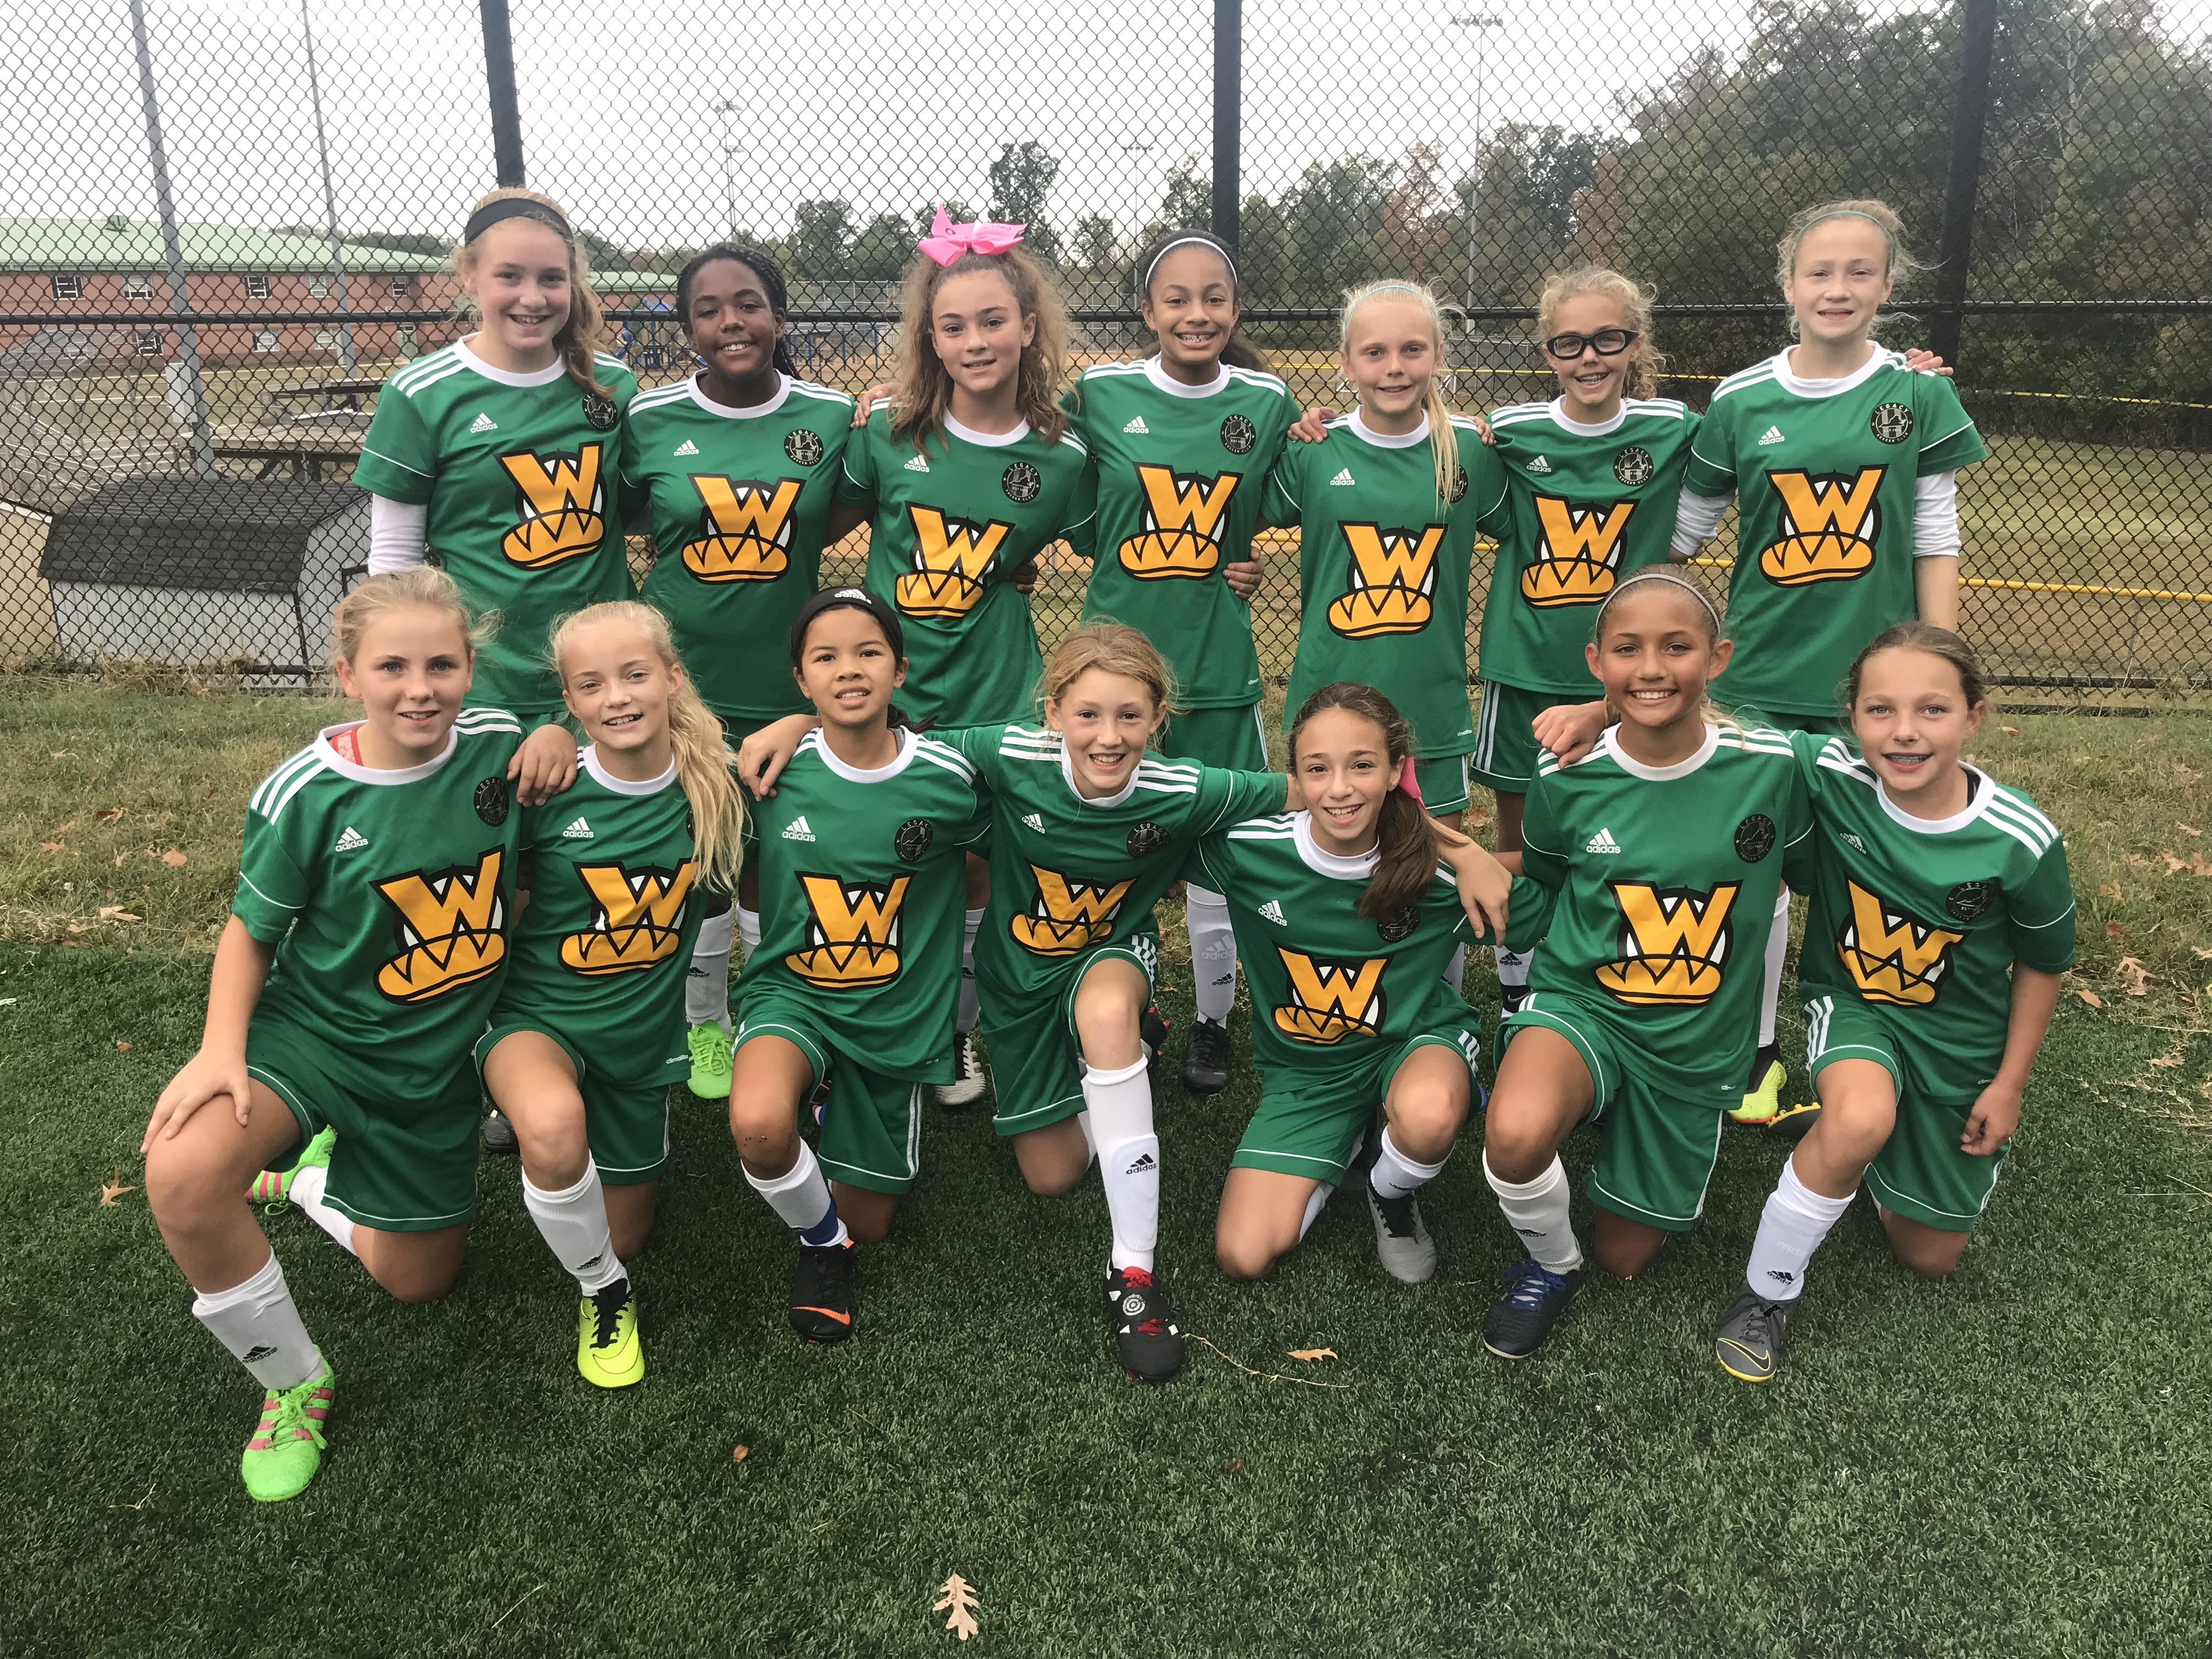 Virginia Legacy Girls - Columbus Day Weekend